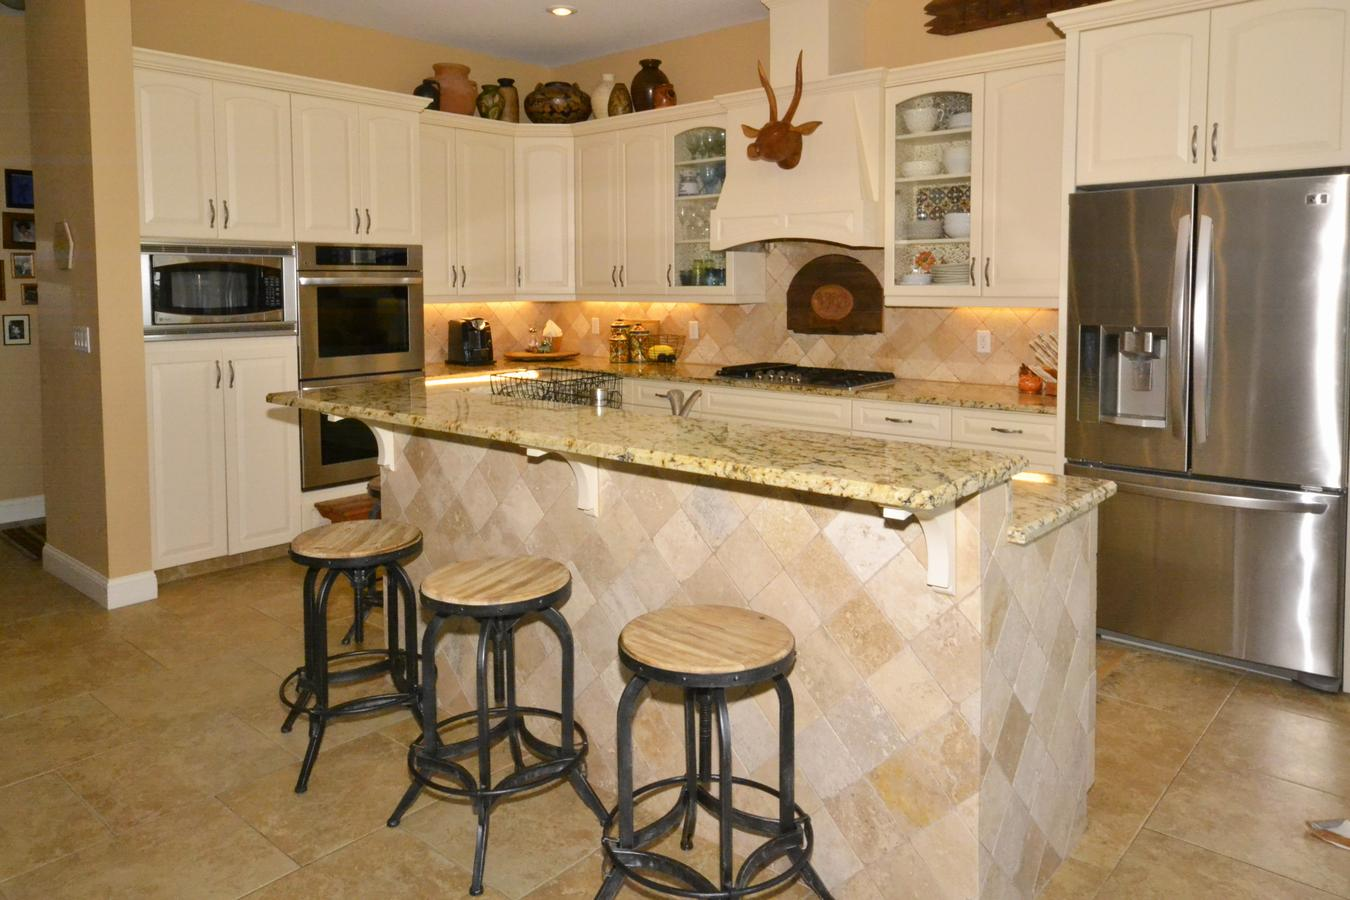 Key west style kitchen cabinets key west style bedroom for Key west style kitchen designs